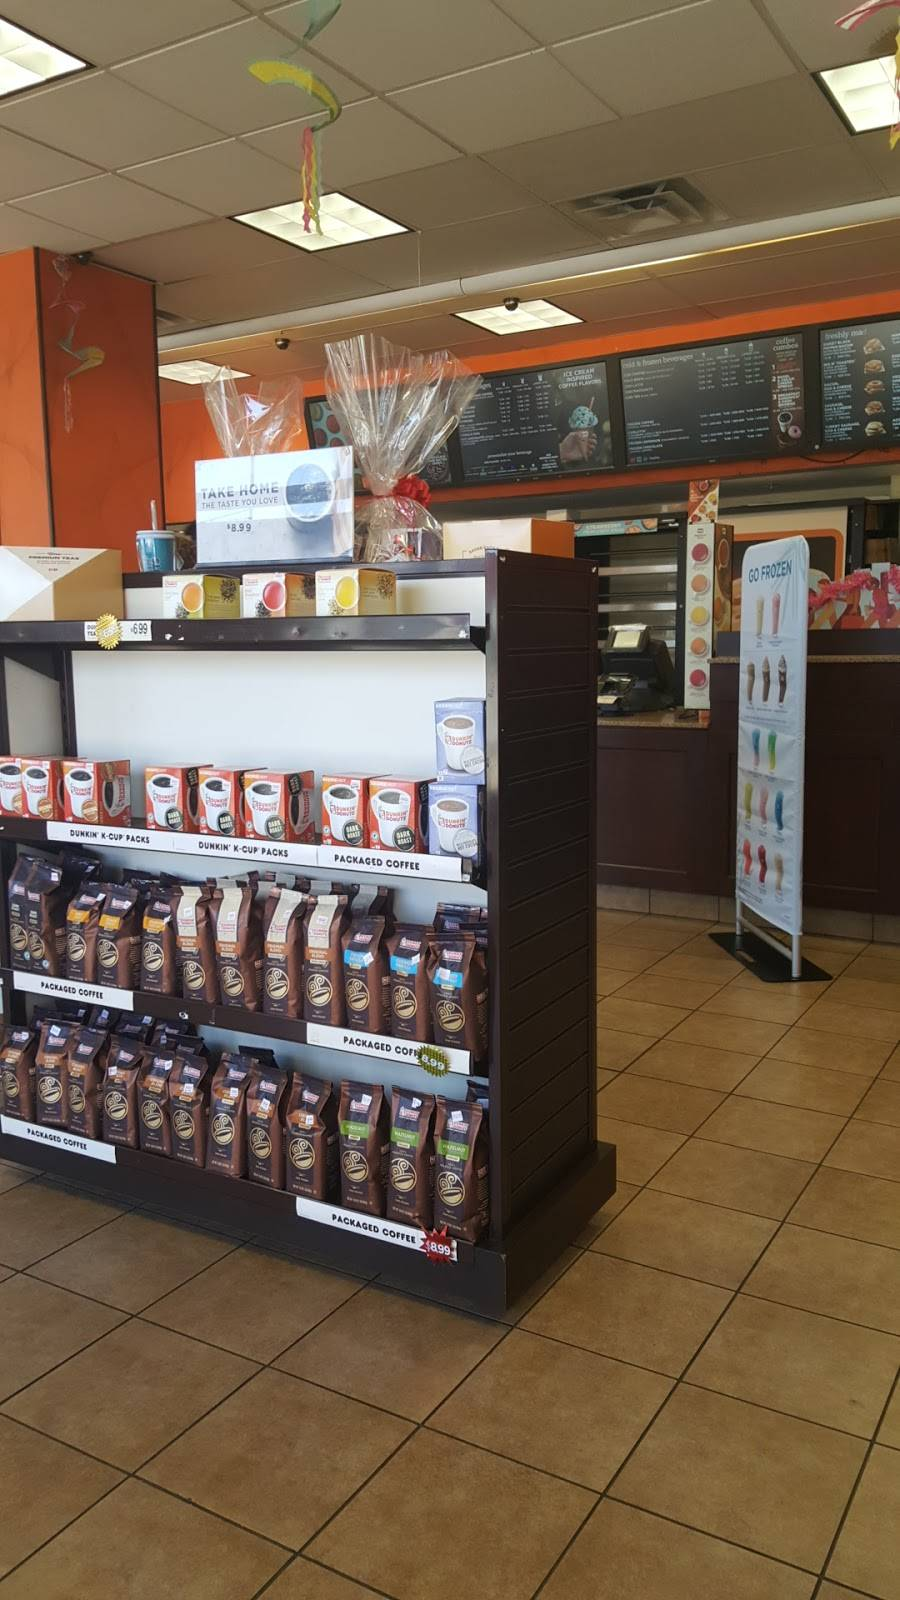 Dunkin Donuts | cafe | 8800 Gross Point Rd, Skokie, IL 60077, USA | 8474707100 OR +1 847-470-7100